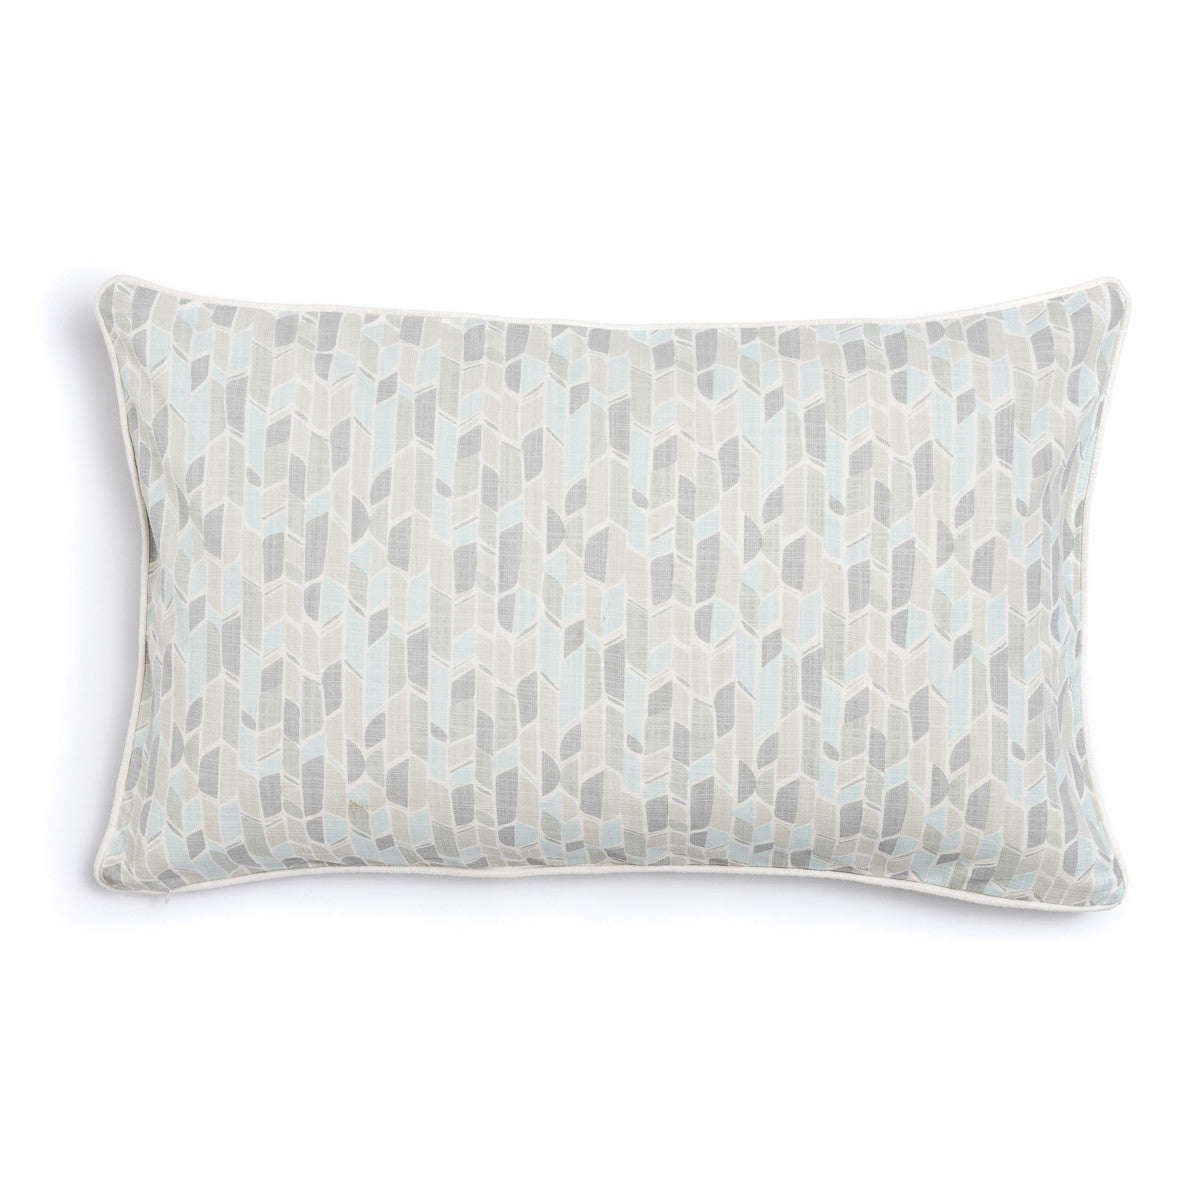 "Pebble 16"" x 26"" Bamboo + Fans Reversible Accent Pillow"